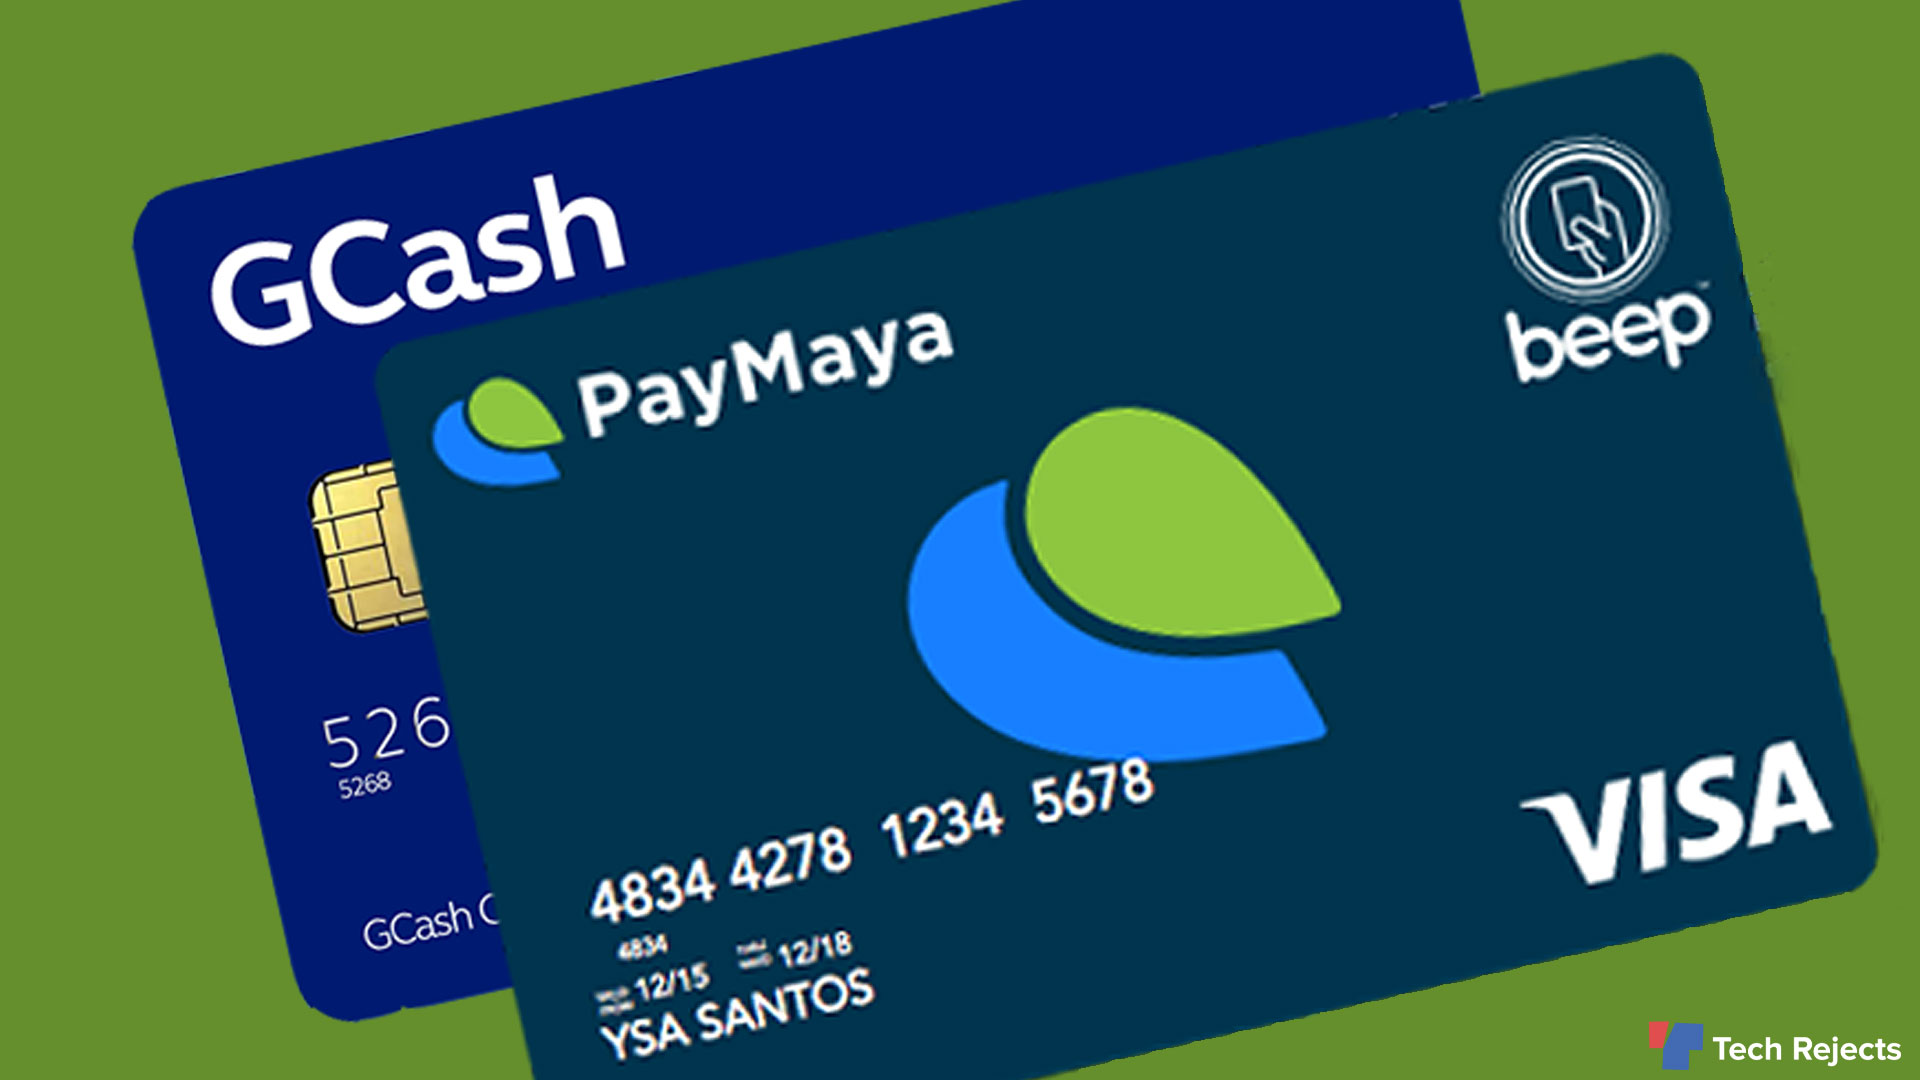 Paymaya to GCash: How to Transfer Cash from Paymaya to GCash